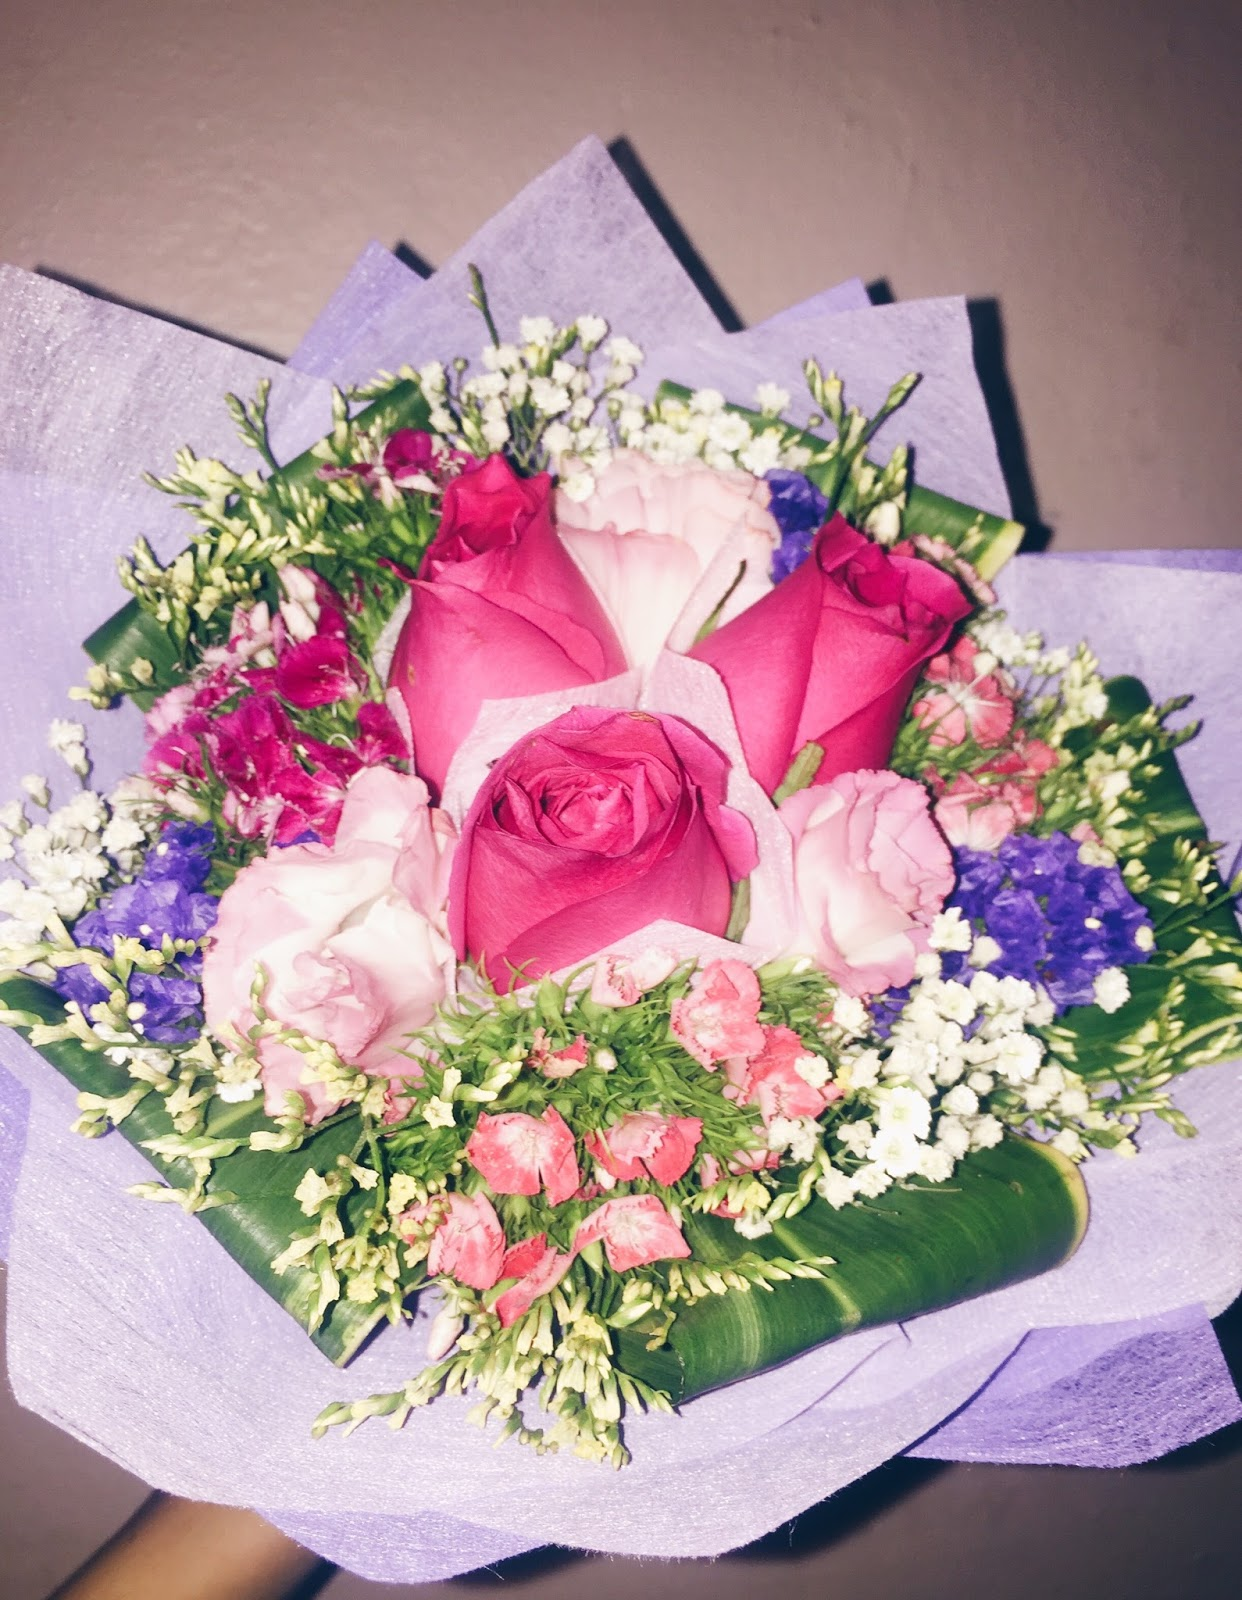 N onfictional 2016 he gave me a bouquet of flowers because it is our 2nd anniversary today he gave me a bouquet of flowers too last year izmirmasajfo